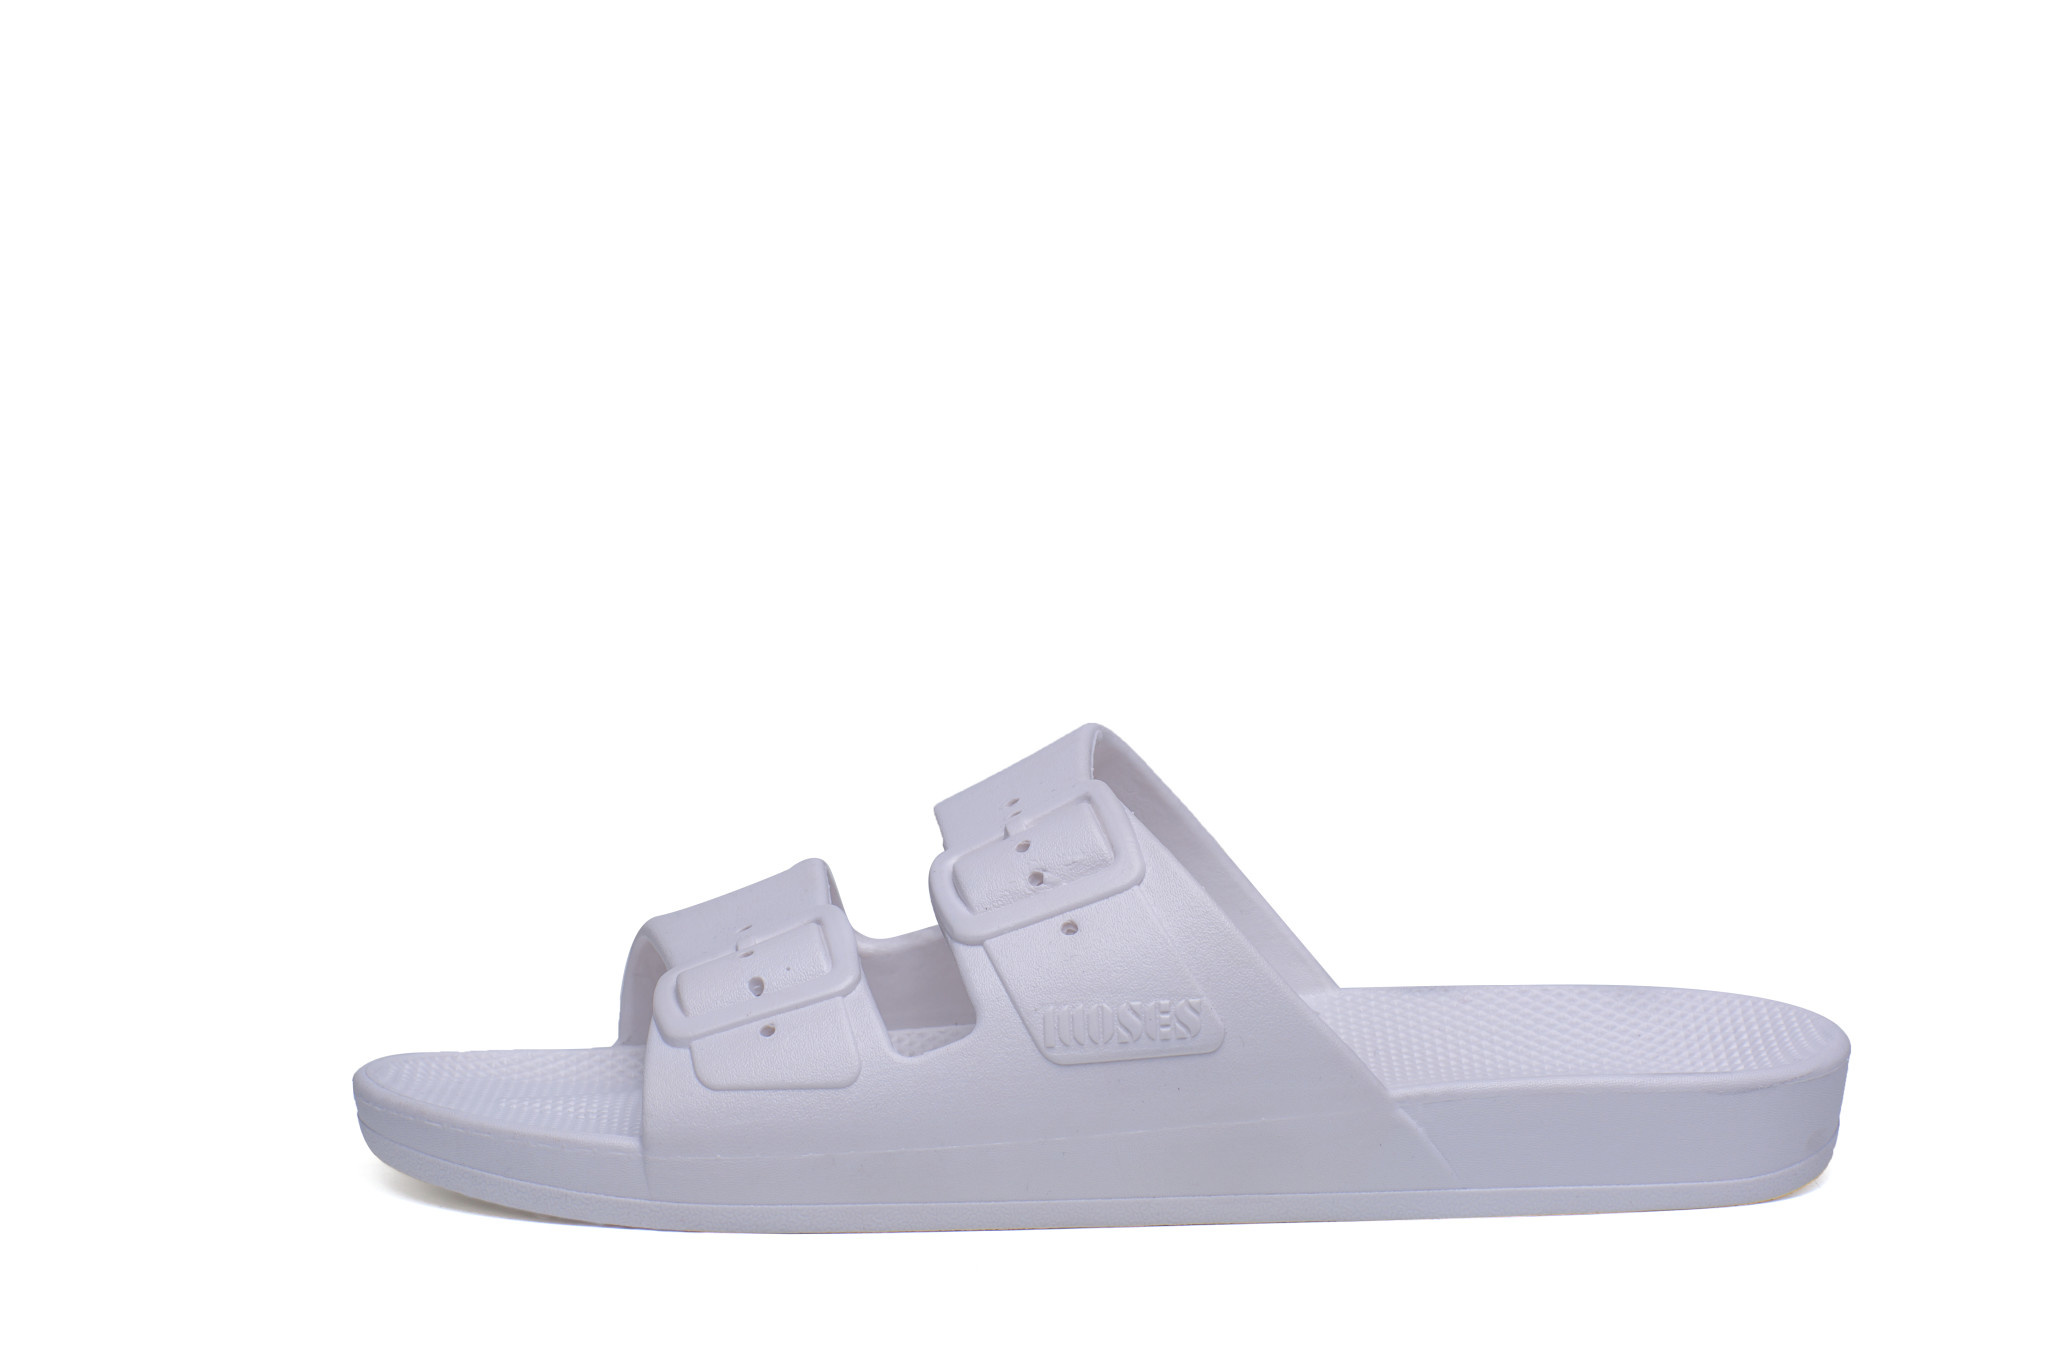 Freedom MOSES Sandales Enfant Classiques Blanches